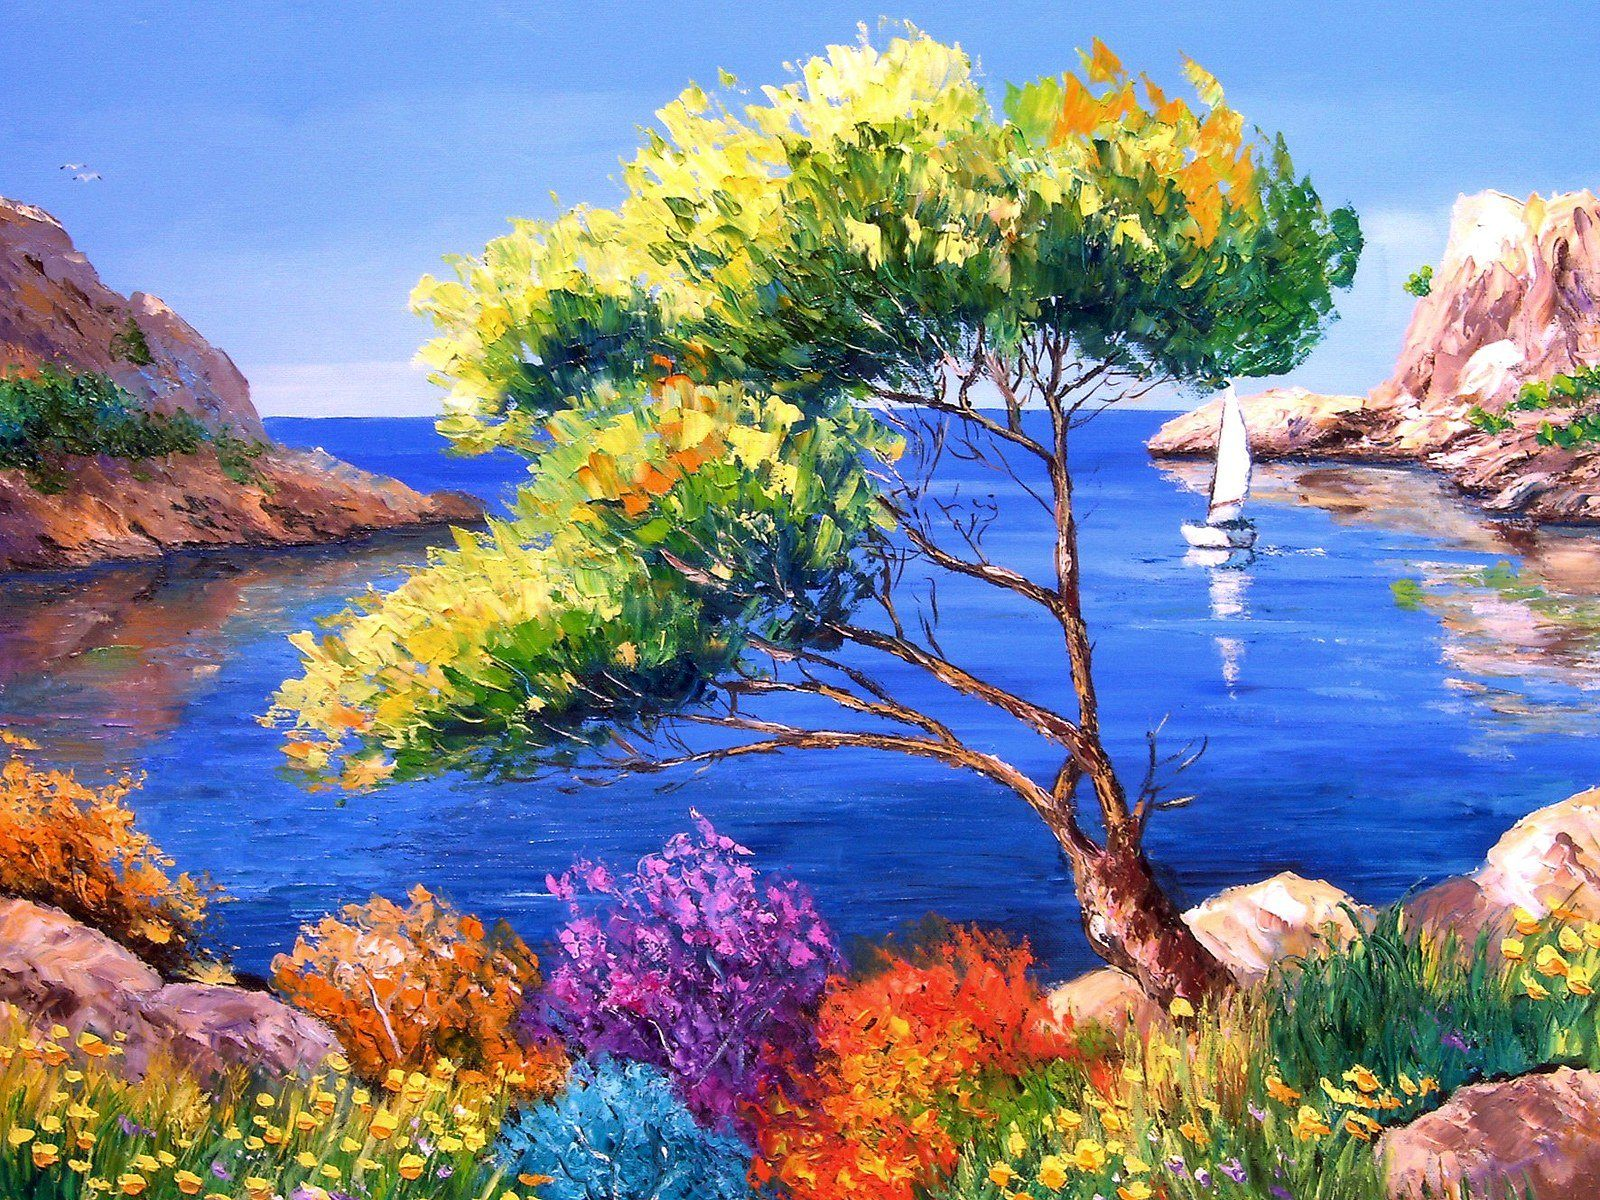 Art Painting Wallpaper Free Download